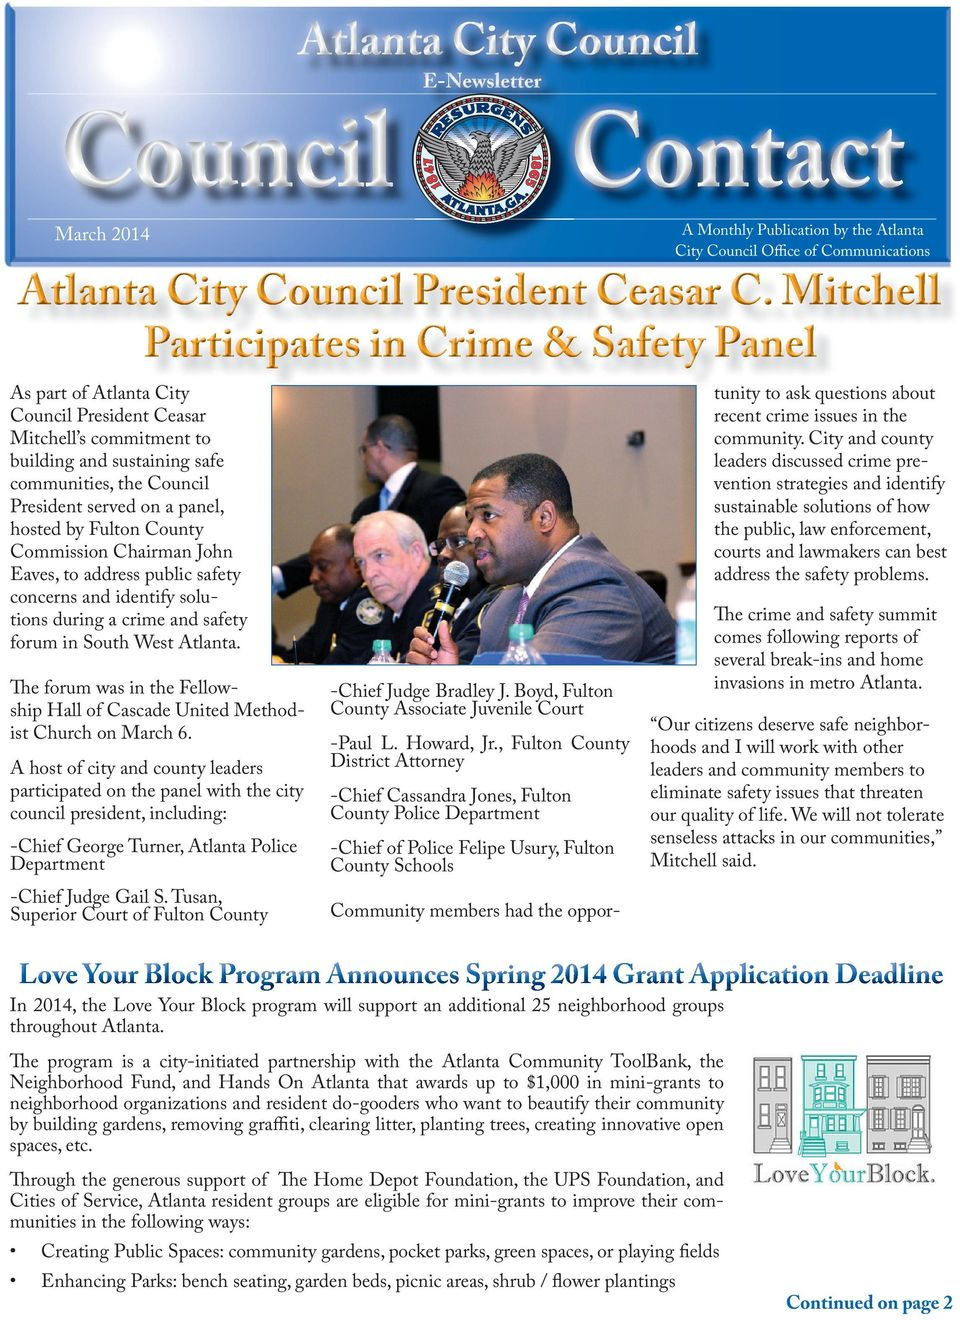 panel, hosted by Fulton County Commission Chairman John Eaves, to address public safety concerns and identify solutions during a crime and safety forum in South West Atlanta.